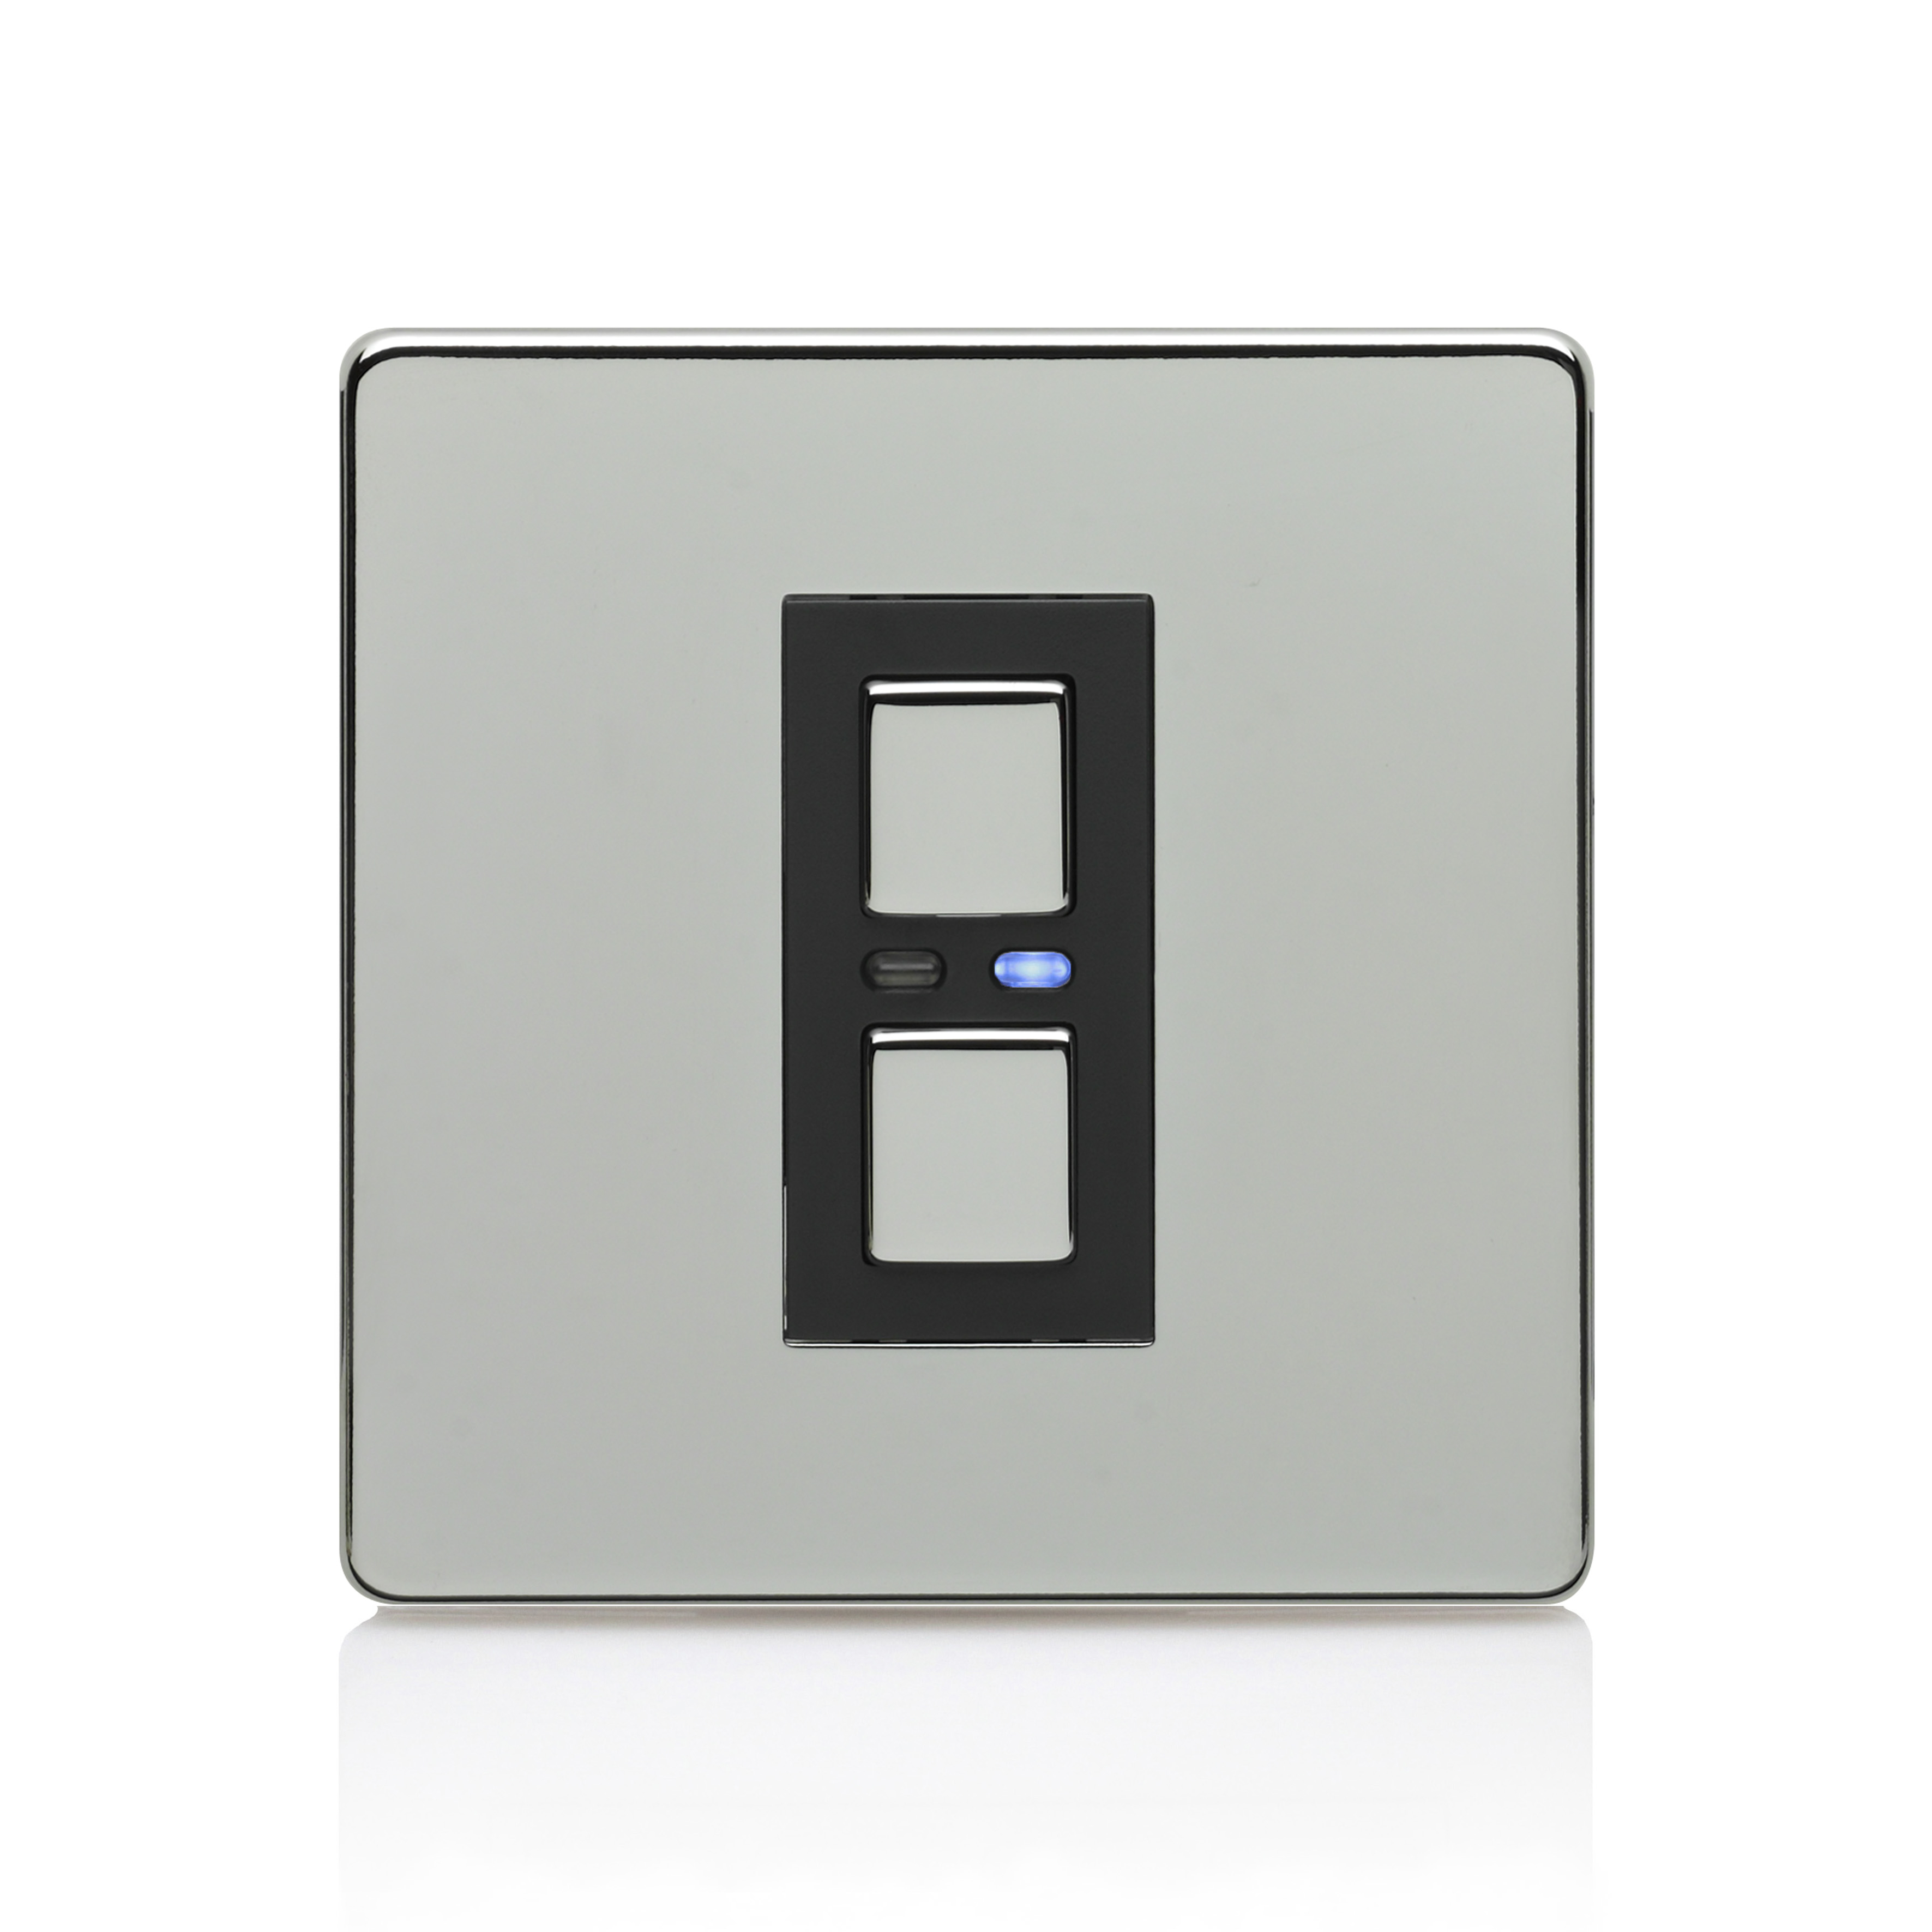 Lightwave LW450C 1G 2 Way Dimmer 250W